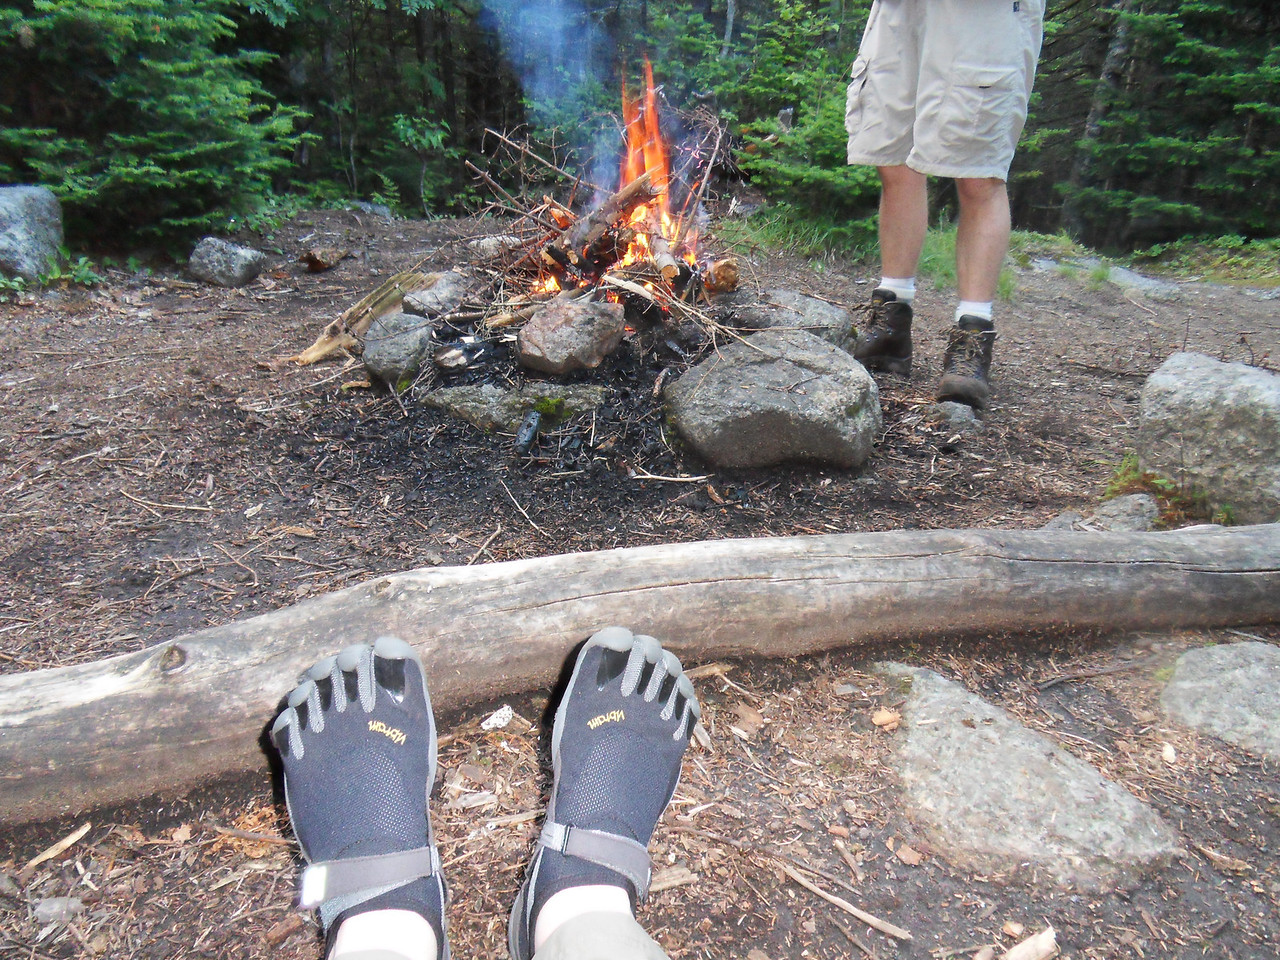 My new Vibram 5 Fingers. They are extremely lightweight camp shoes, and comfortable. We actually saw a few people hiking the trail in these and all say how great they are! Take my word for it, only knuckleheads hike high peaks in these slippers. They speak not the truth of comfort. They are manly men in their minds only. Wear boots like the rest of us, or risk breaking an ankle.